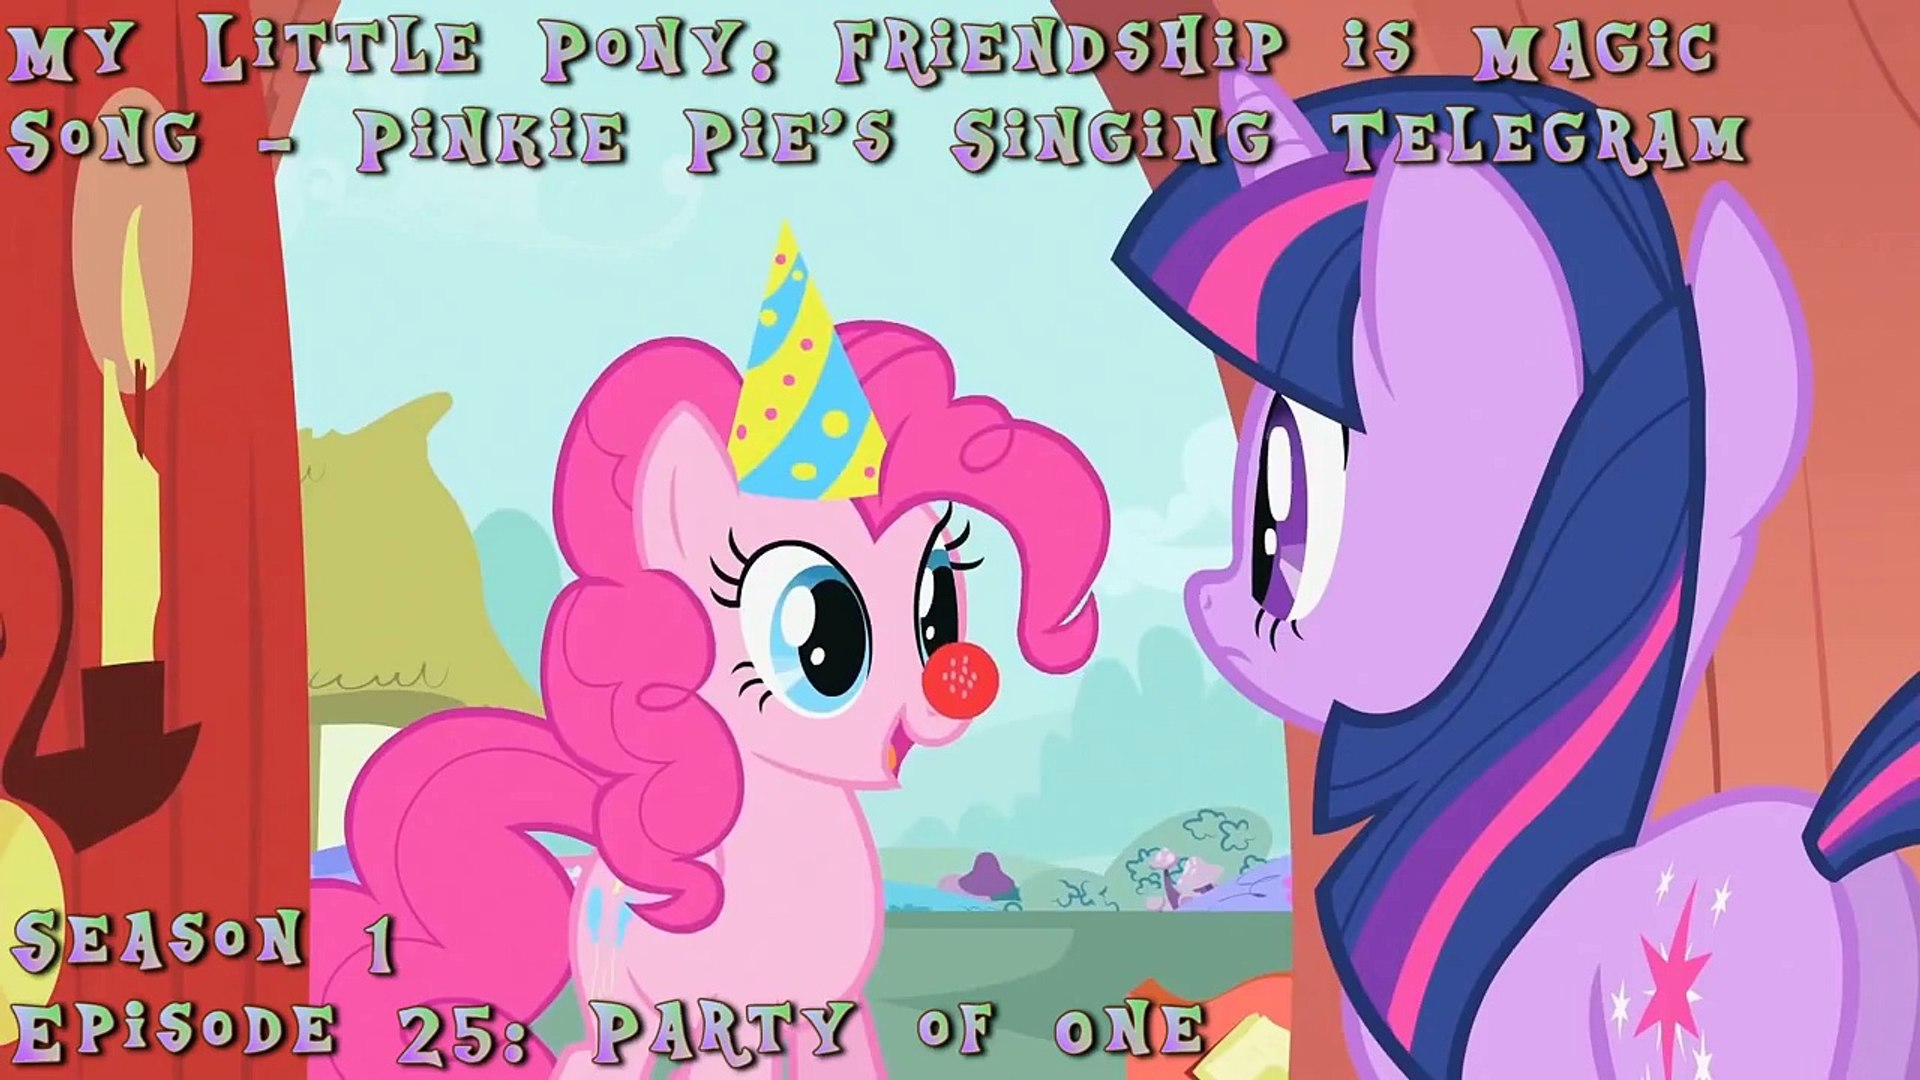 My Little Pony: Friendship is Magic - Pinkie Pies Singing Telegram